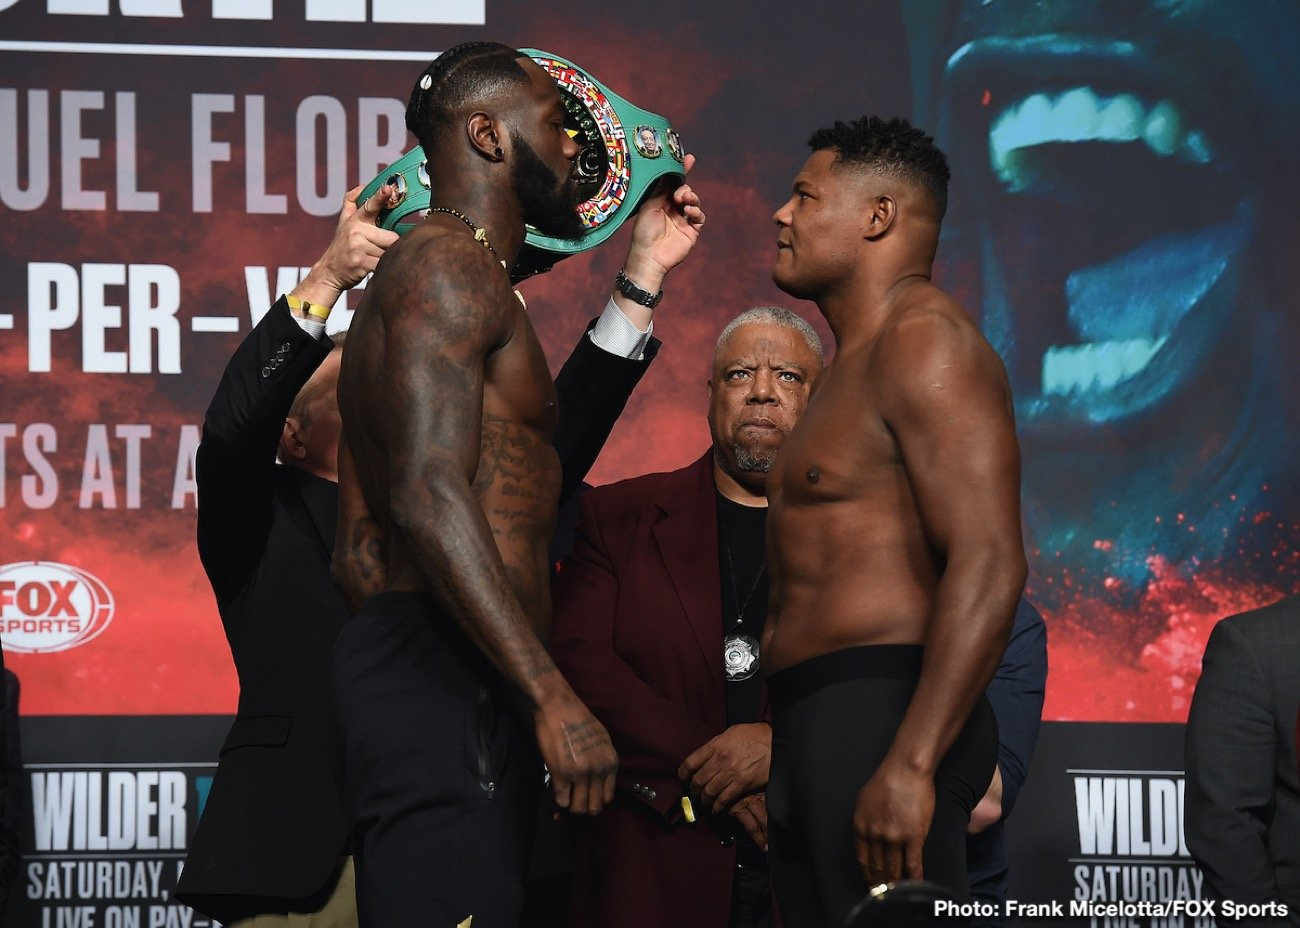 Deontay Wilder, Fox Sports Pay-Per-View, Luis Ortiz - This Saturday night from the MGM Grand Garden Arena in Las Vegas, Nevada, Deontay Wilder makes a tenth defense of his WBC strap in a rematch with Luis Ortiz. Their first meeting in March 2018 was a fight of the year candidate and judging by the shape of Ortiz and the style matchup we just might be in for another intriguing outcome. The co-feature is a disappointing one with 'Mr. I need a big fight' Leo Santa Cruz in a stay busy outing versus Miguel Flores. Nery vs. Rodriguez looks to be competitive on paper and Figueroa vs. Ceja is a nice step up for an inexperienced Texas native that could turn into a war. The underbelly of this FOX PPV is not as solid as the last two events, but better than the Spence/Garcia undercard.